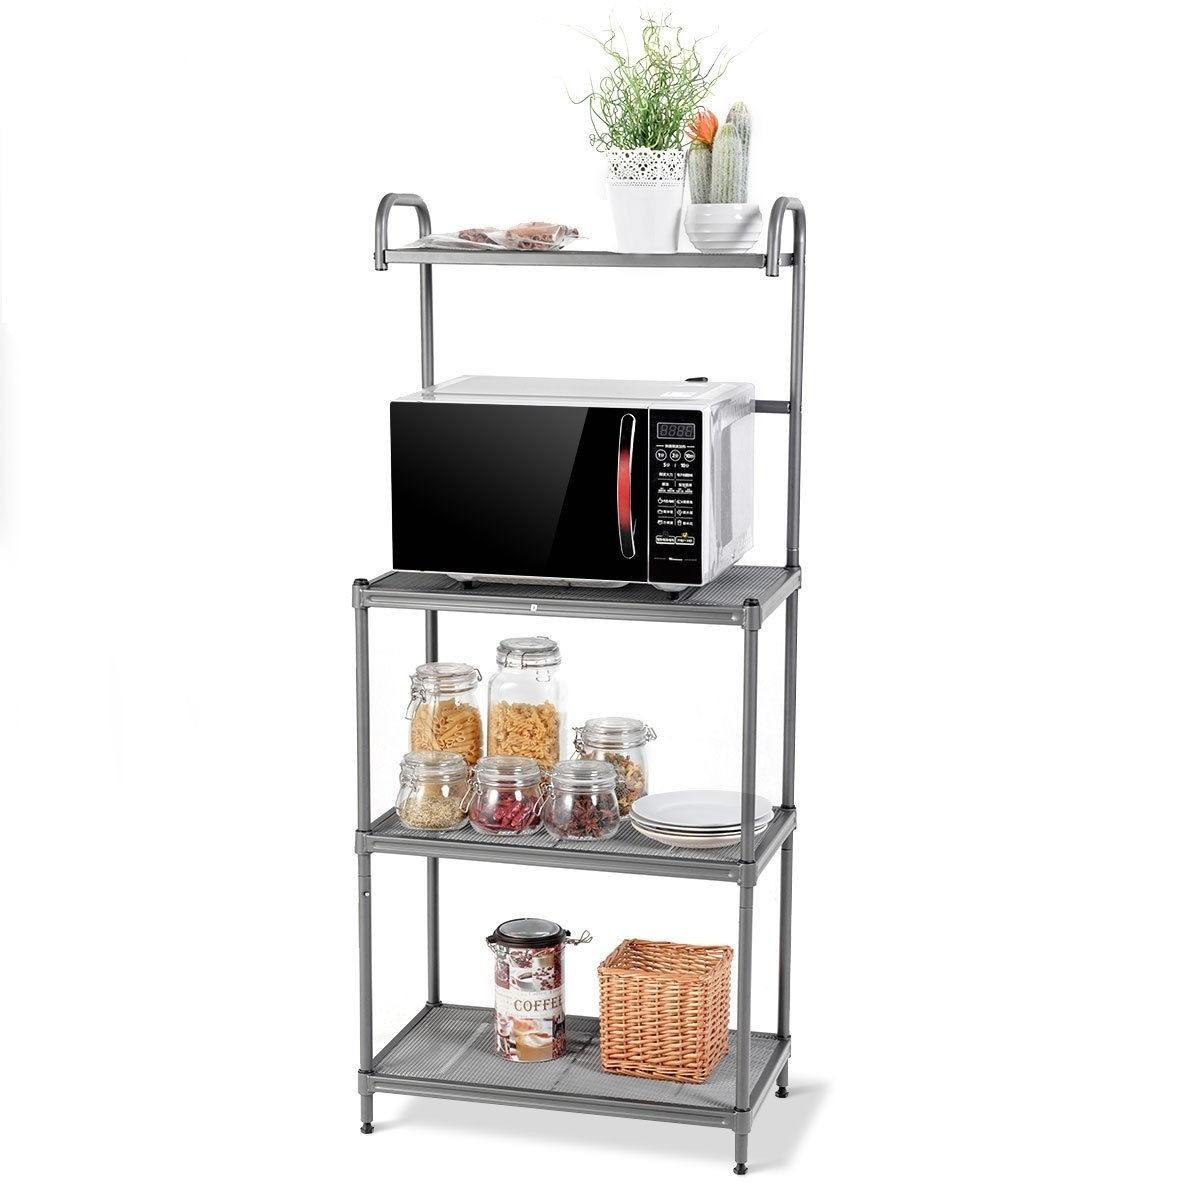 4 Tier Kitchen Storage Baker Microwave Oven Rack Shelves 60 95